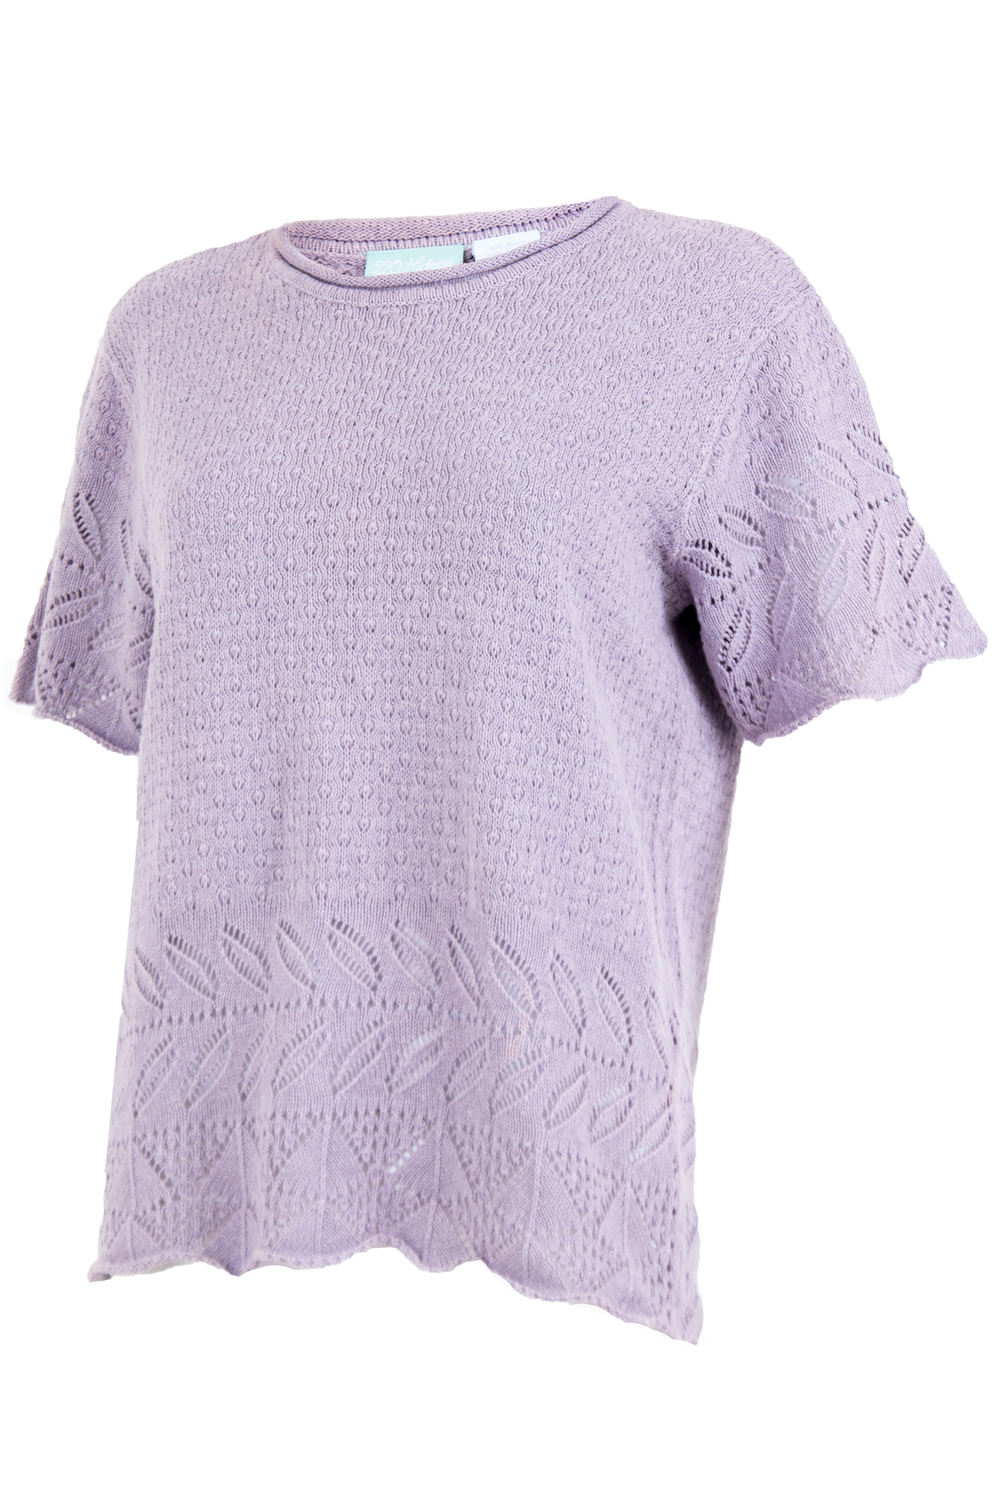 Side view of vintage lilac purple knitted shirt featuring intricate cutout pattern short sleeves and crewneck.